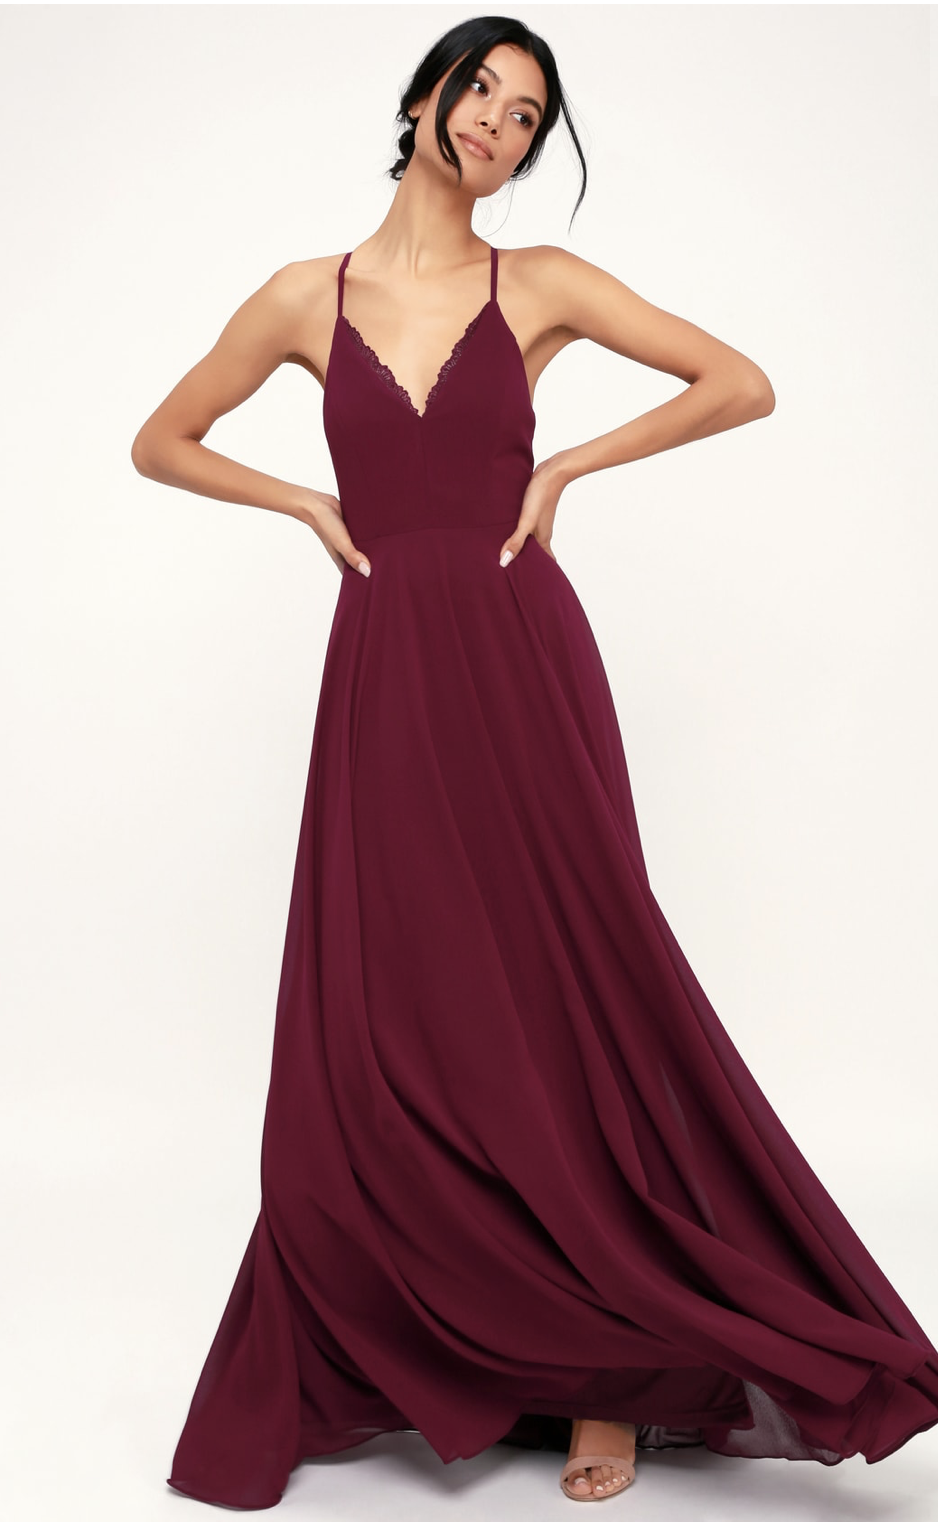 165cbeca26d7 Revolve X by NBD Felicity Embroidered Dress in Blush $288 · Lulu's Lovely  Burgundy Maxi Dress $86